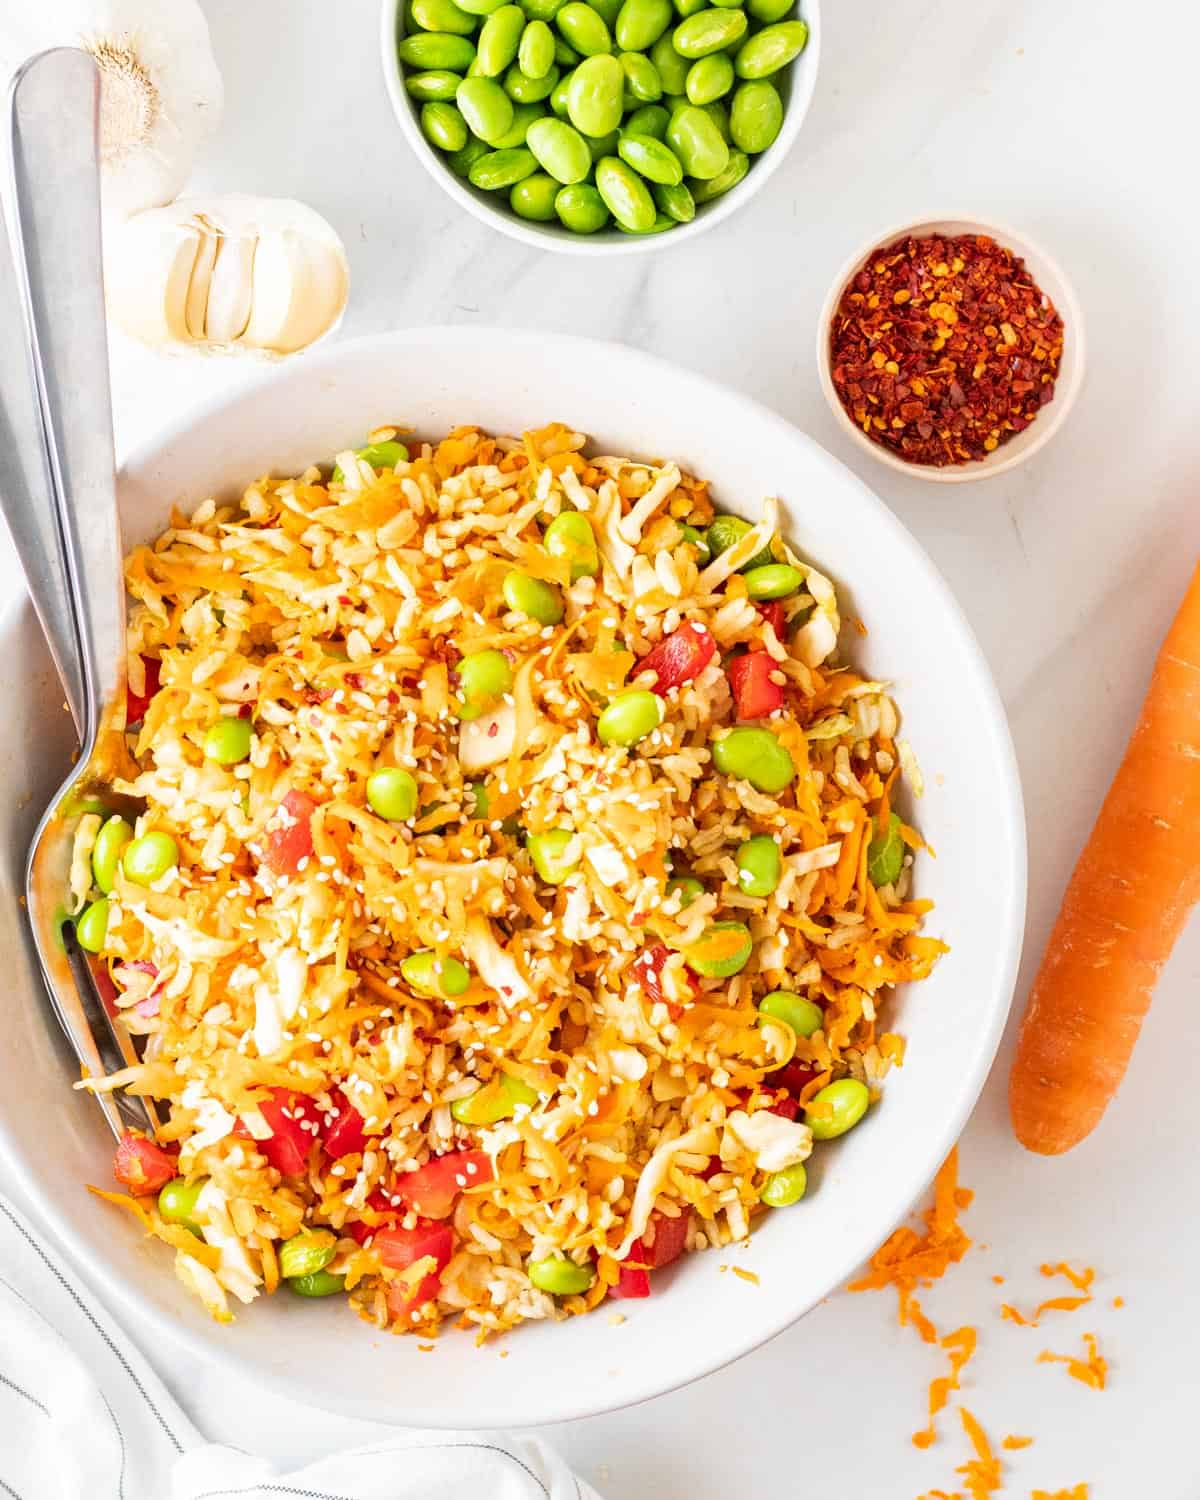 Vegan rice salad served in a large bowl with fork and spoon on the side.